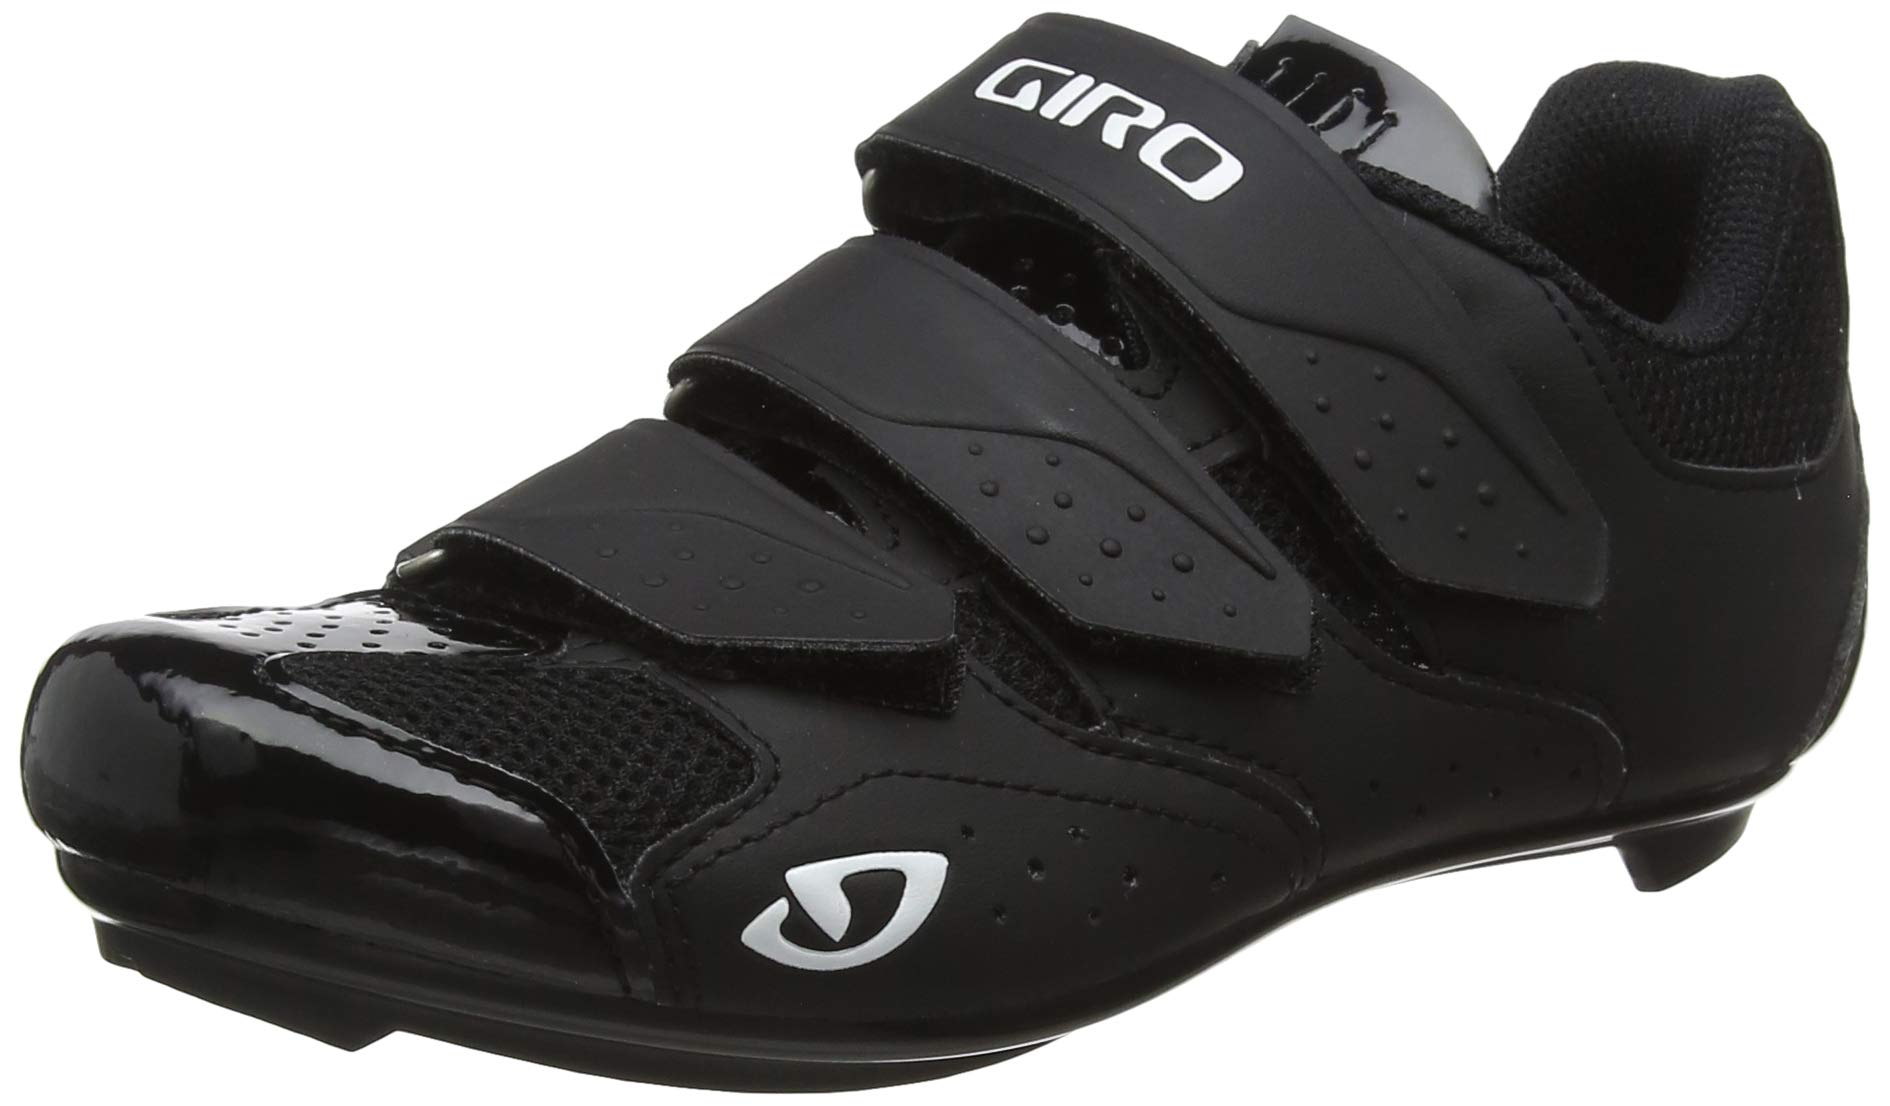 Giro Techne Cycling Shoes - Women's Black 40 by Giro